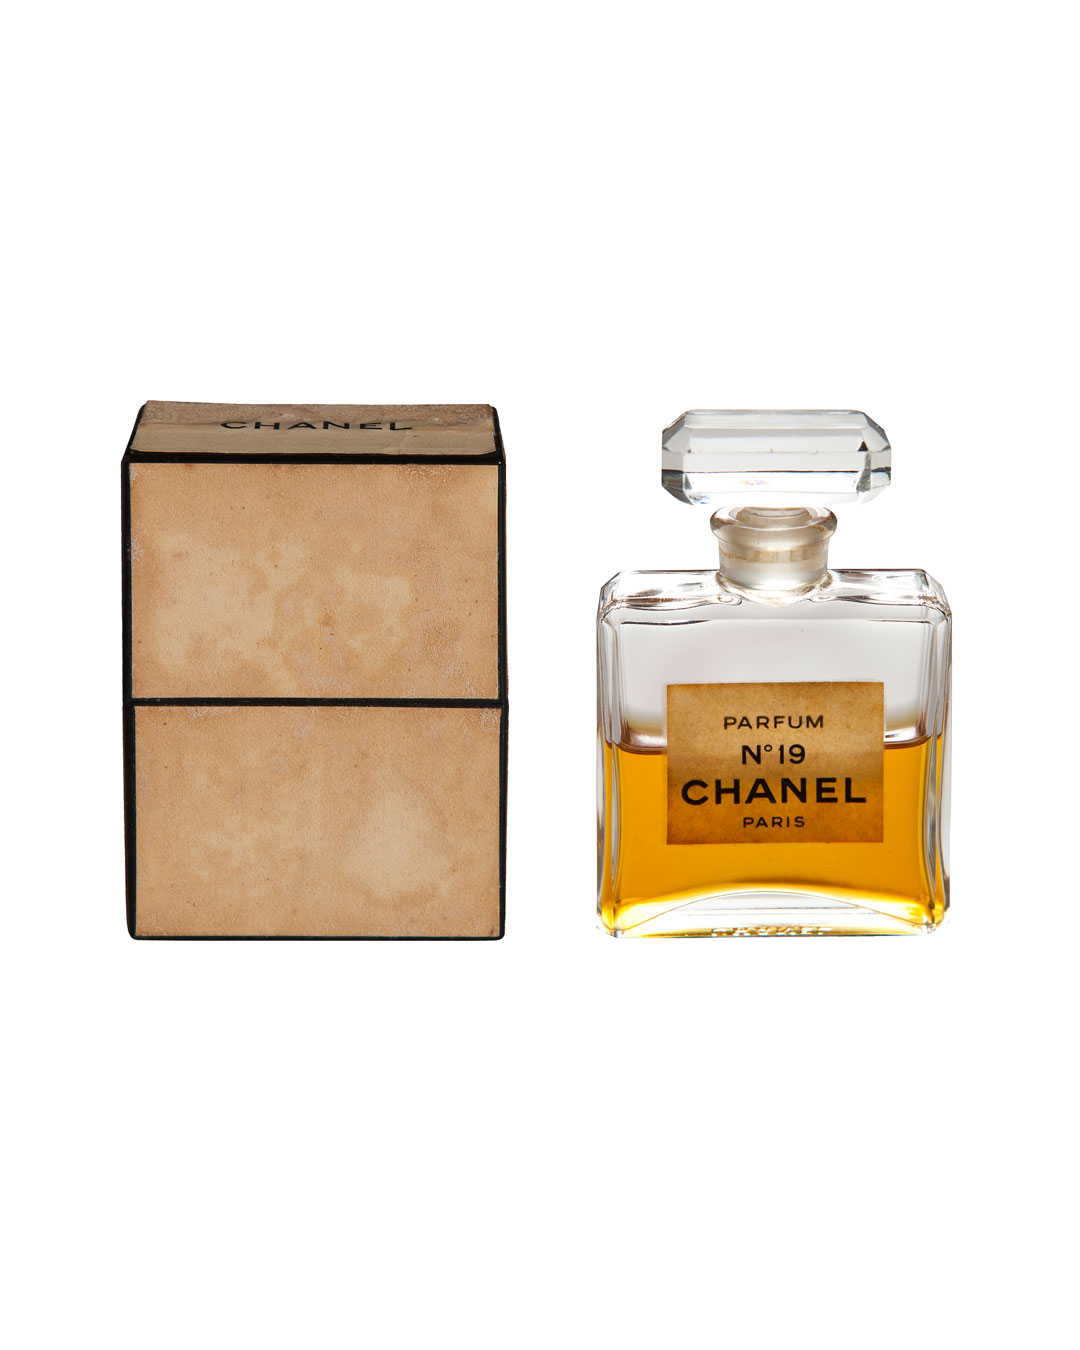 Annelies Planteijdt, Mooie stad – Collier en Chanel no.19 (Beautiful City - Necklace with Chanel no.19), 2017, bottle of Chanel no.19 (image 3/3)